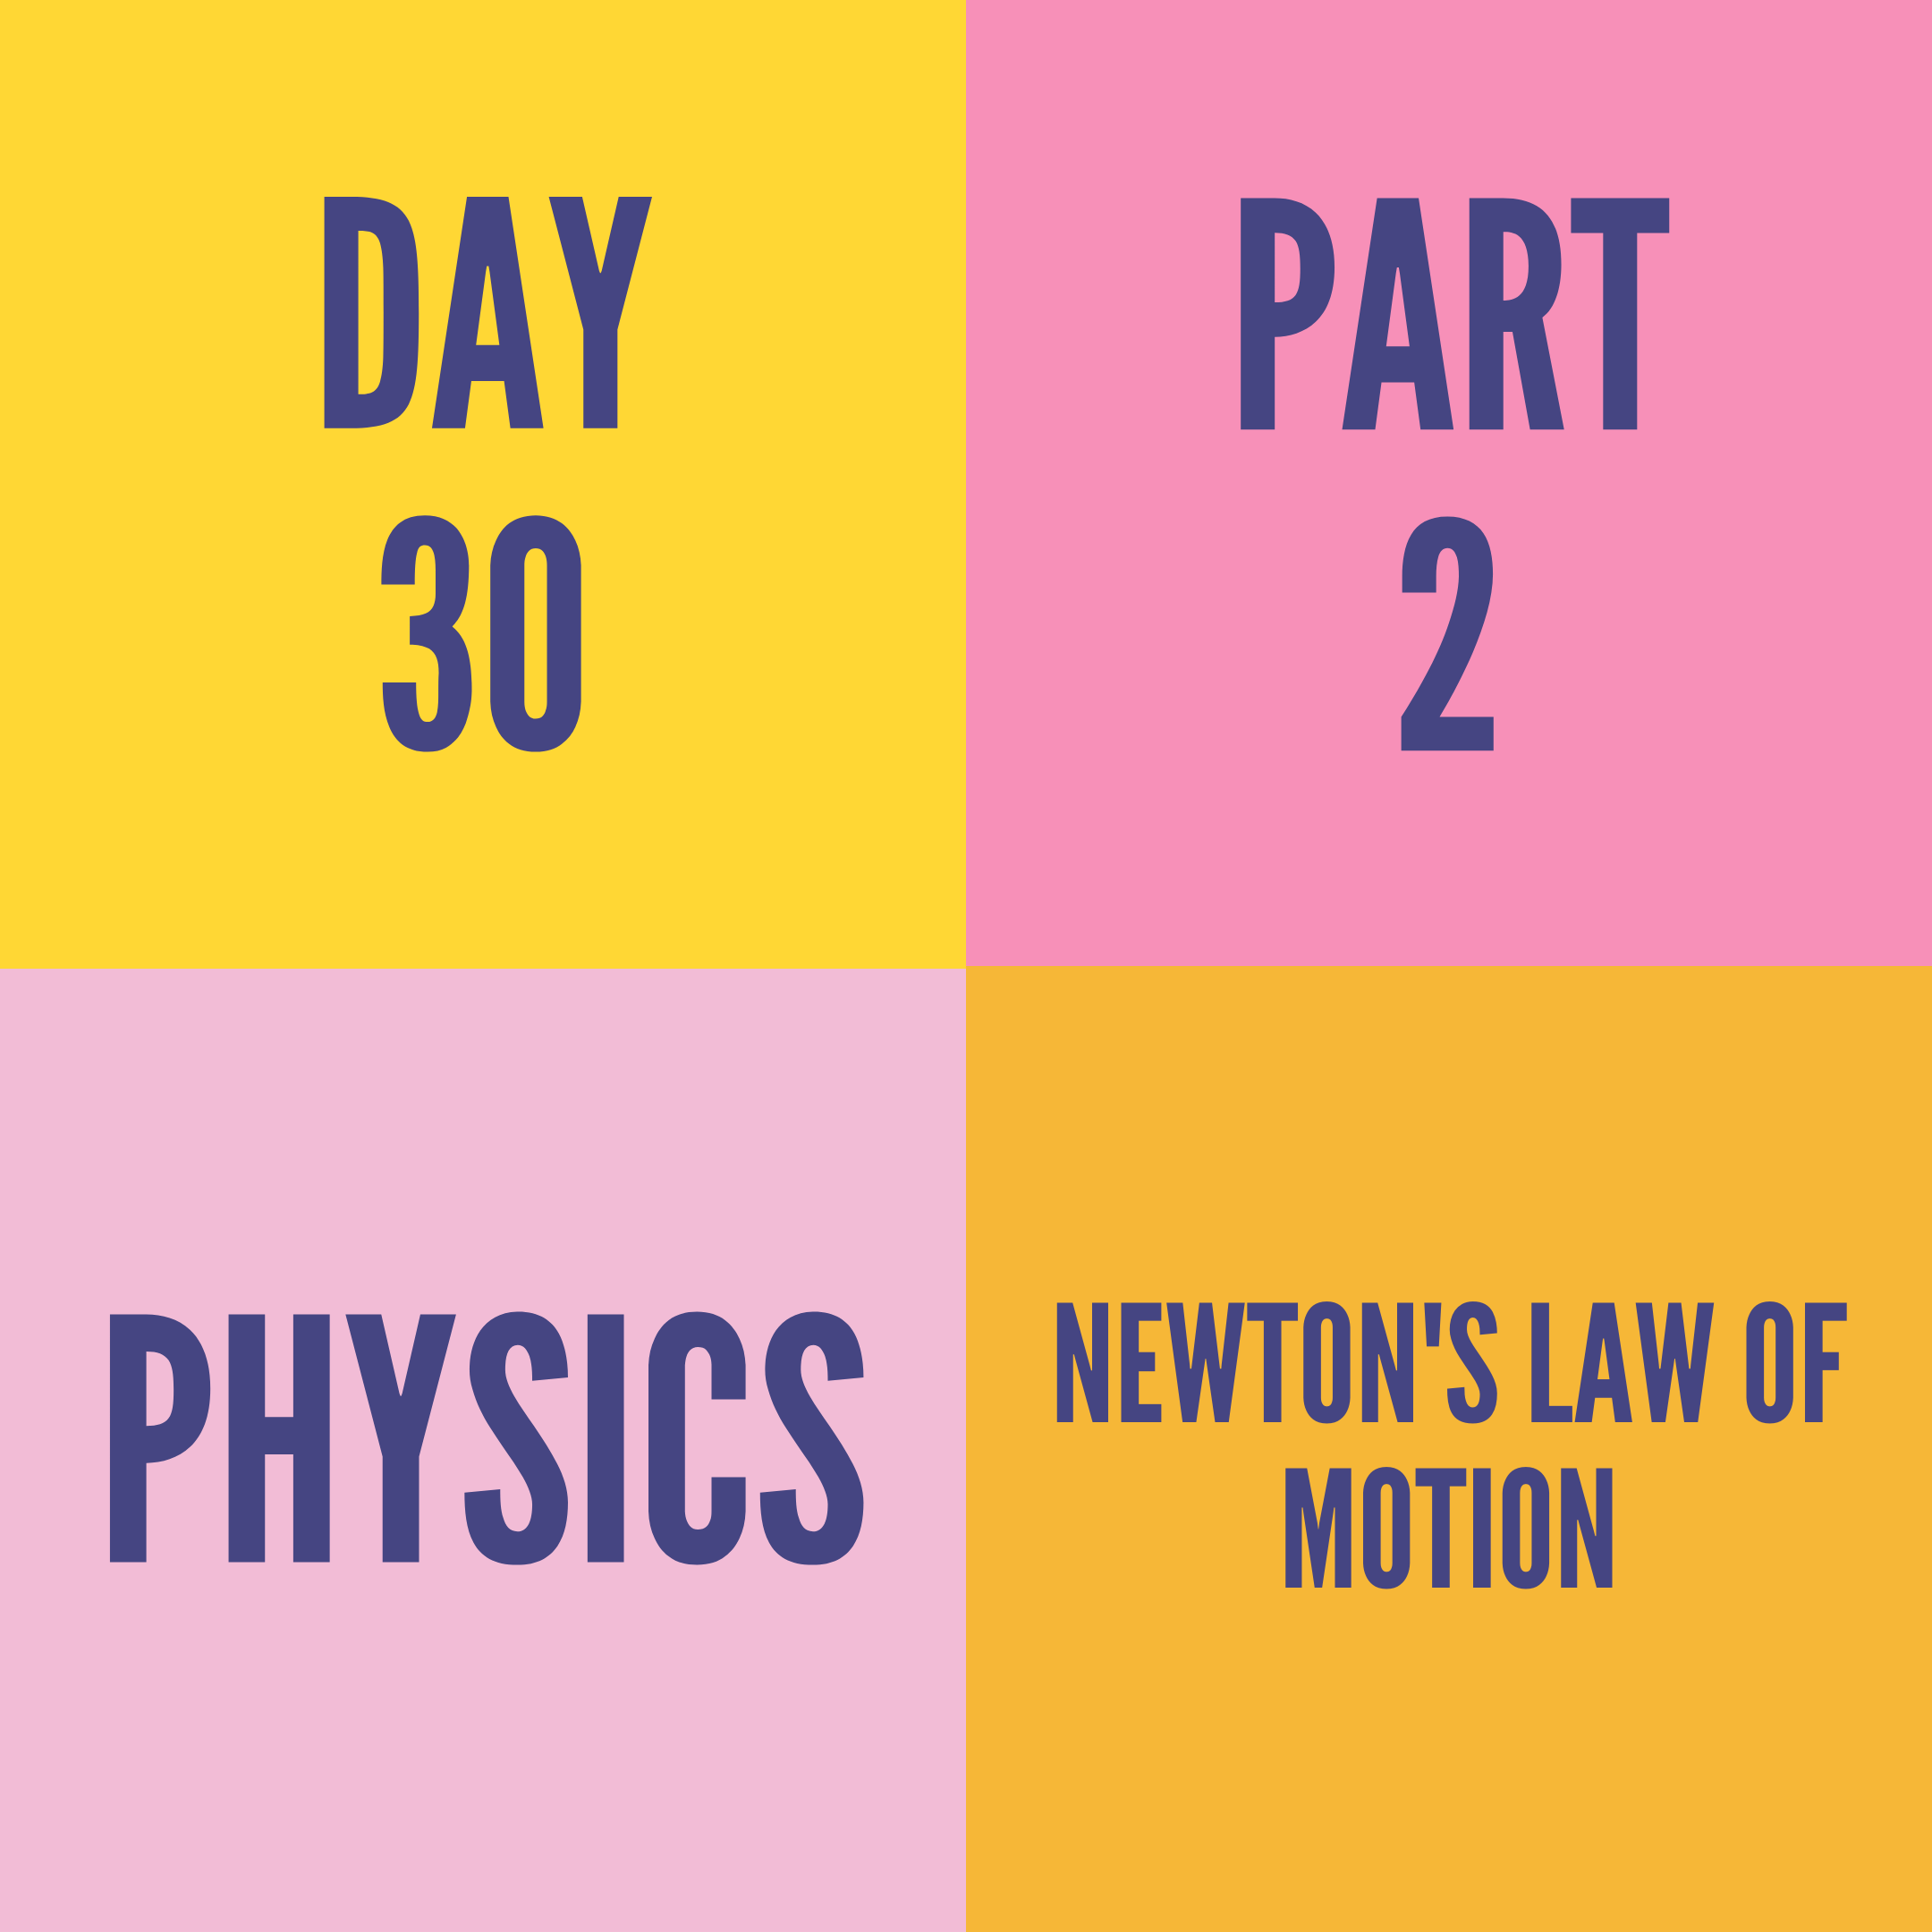 DAY-30 PART-2 NEWTON'S LAW OF MOTION